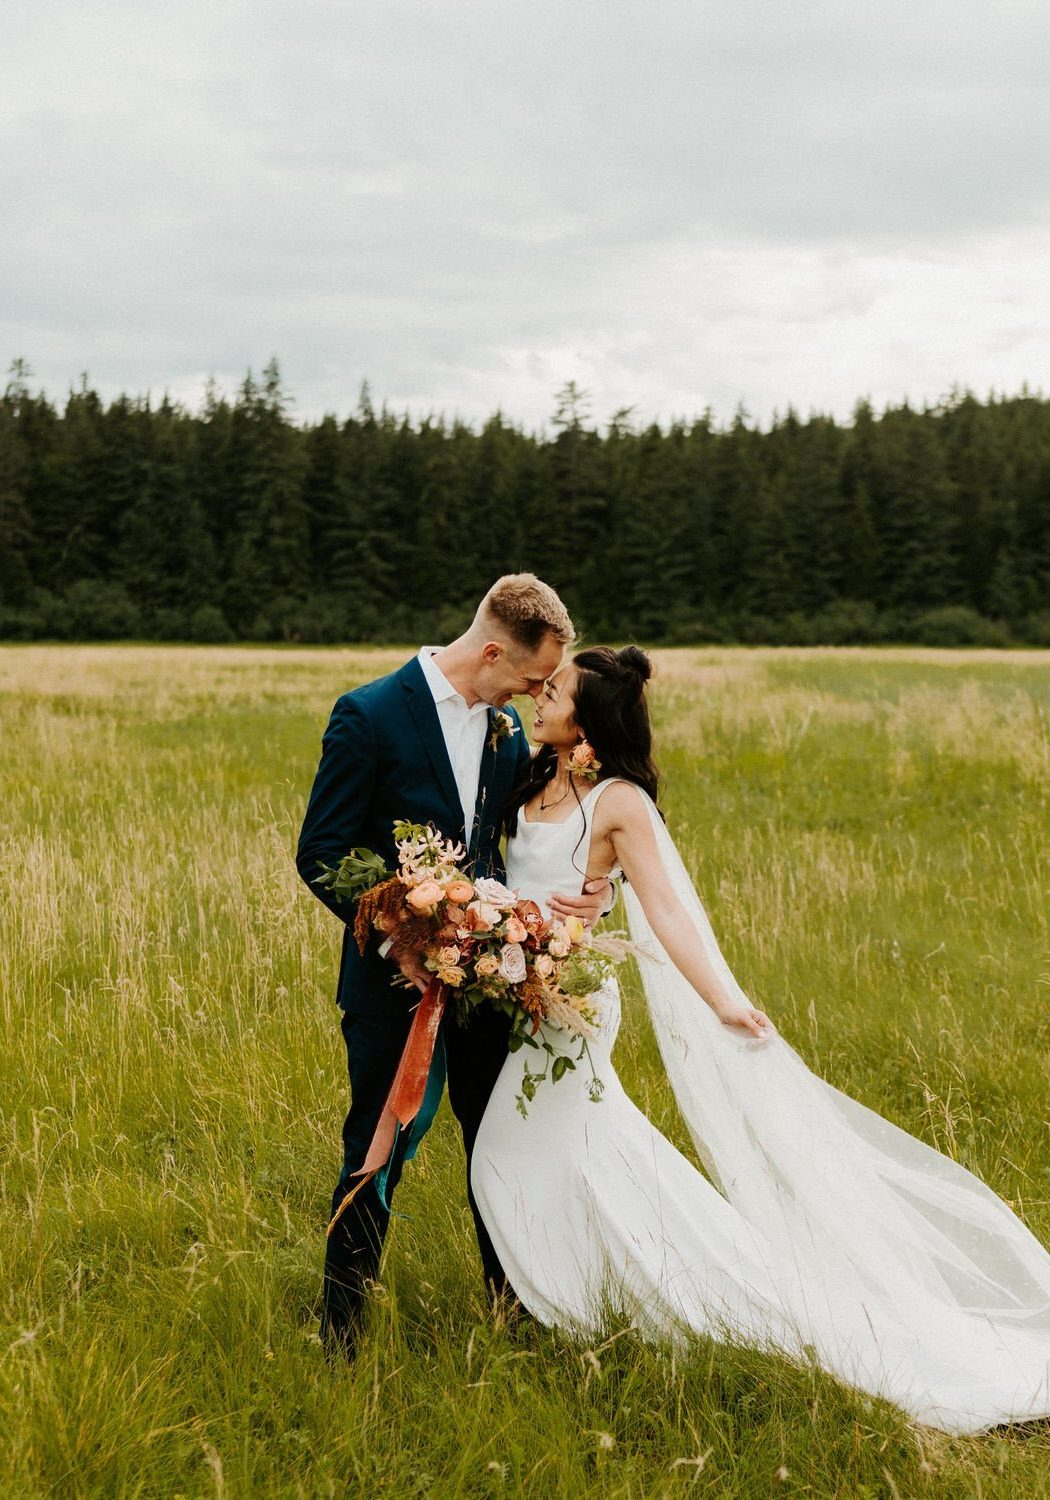 Woodsy Elopement in Alaska | Natalie + Ryan